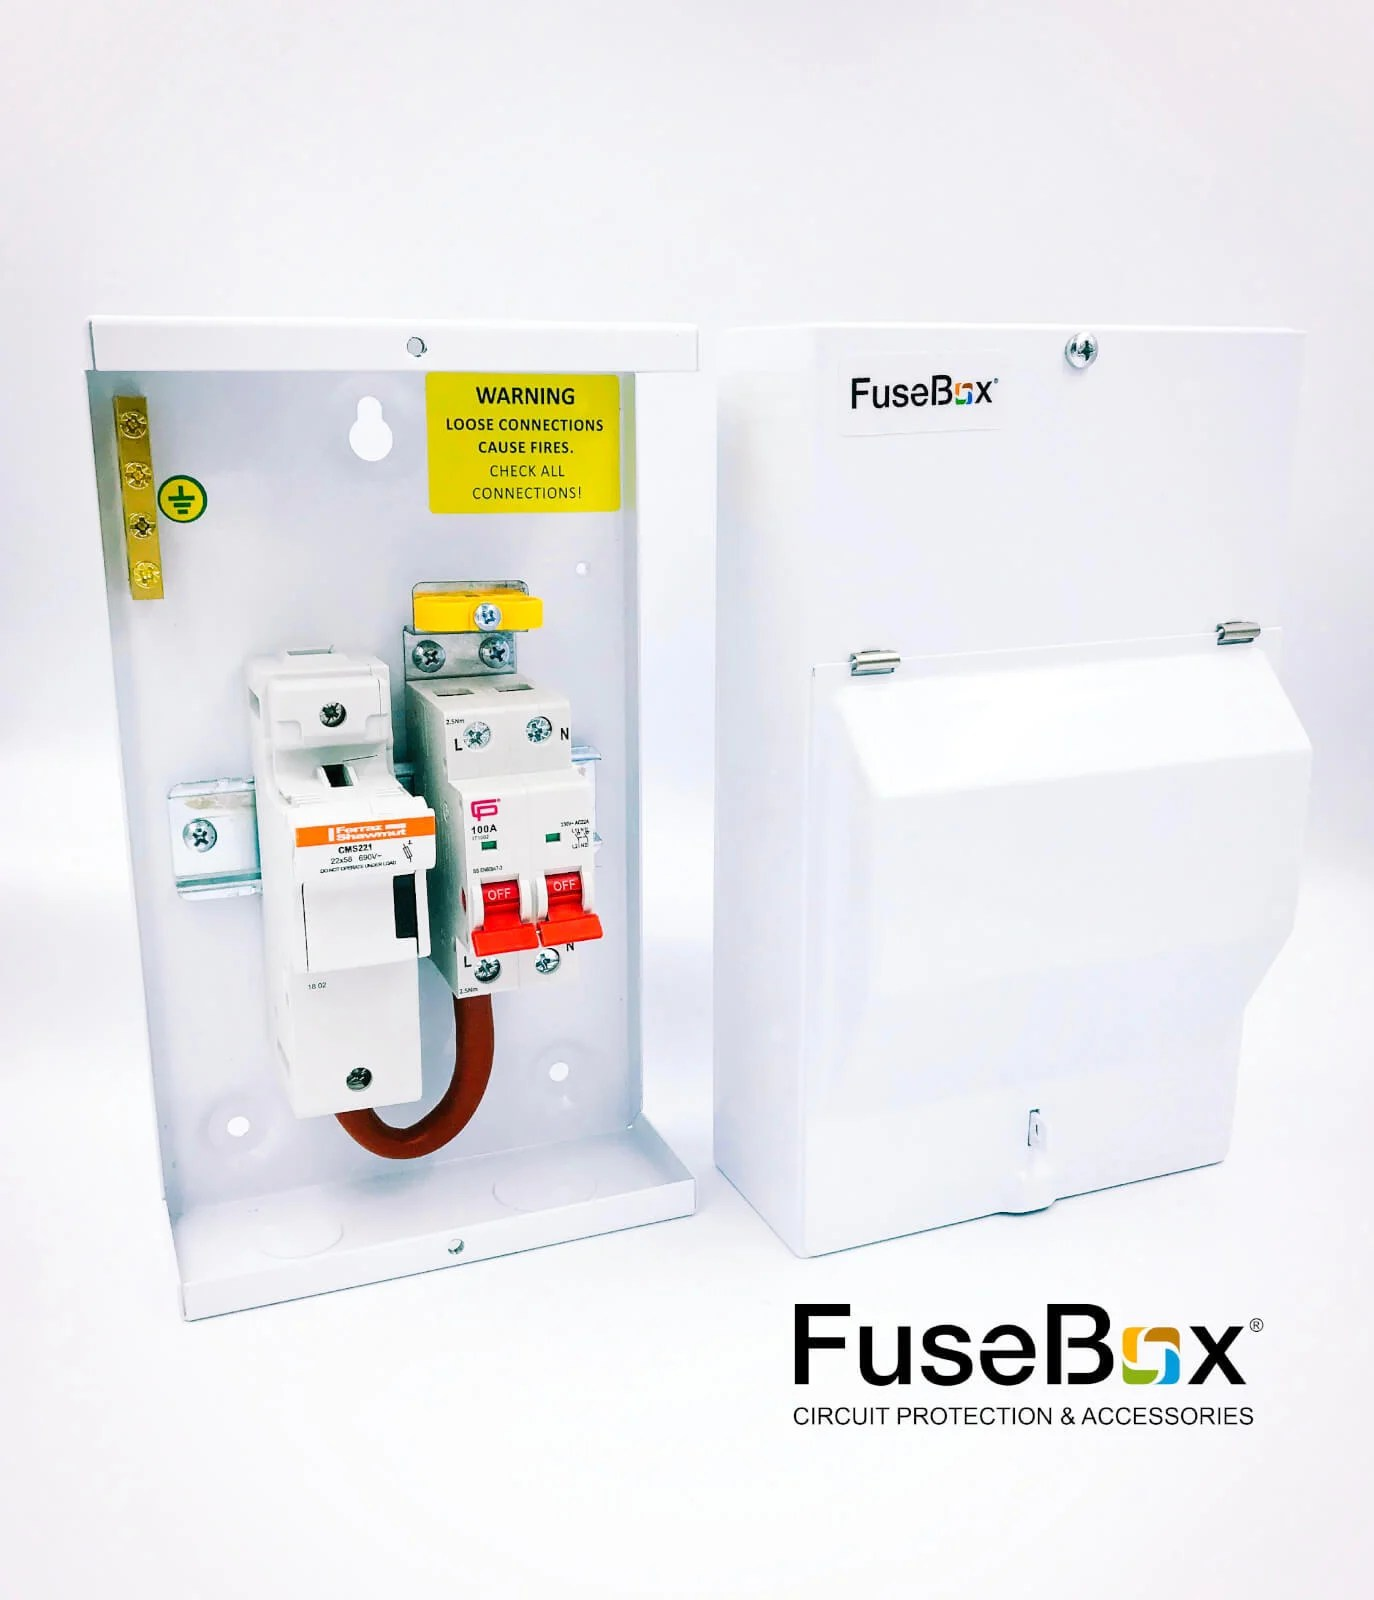 hight resolution of sf0100 fusebox metal clad fused mains switch isolator 100a 1p n inc 63a 80a 100a fuses